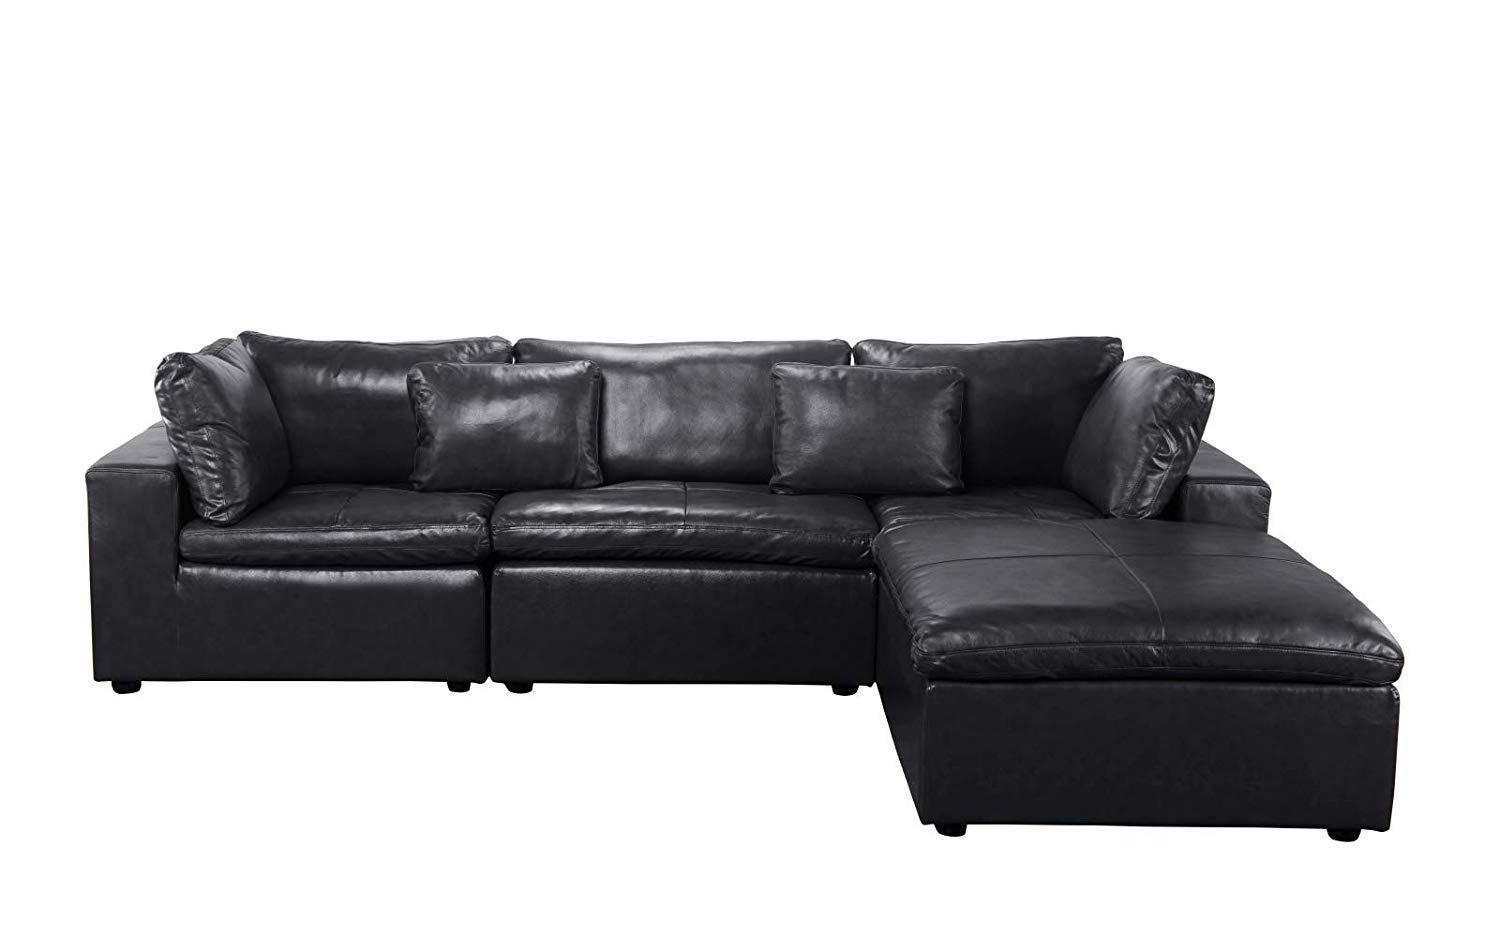 Large Leather Sectional Sofa, L Shape Couch with Wide Chaise ...